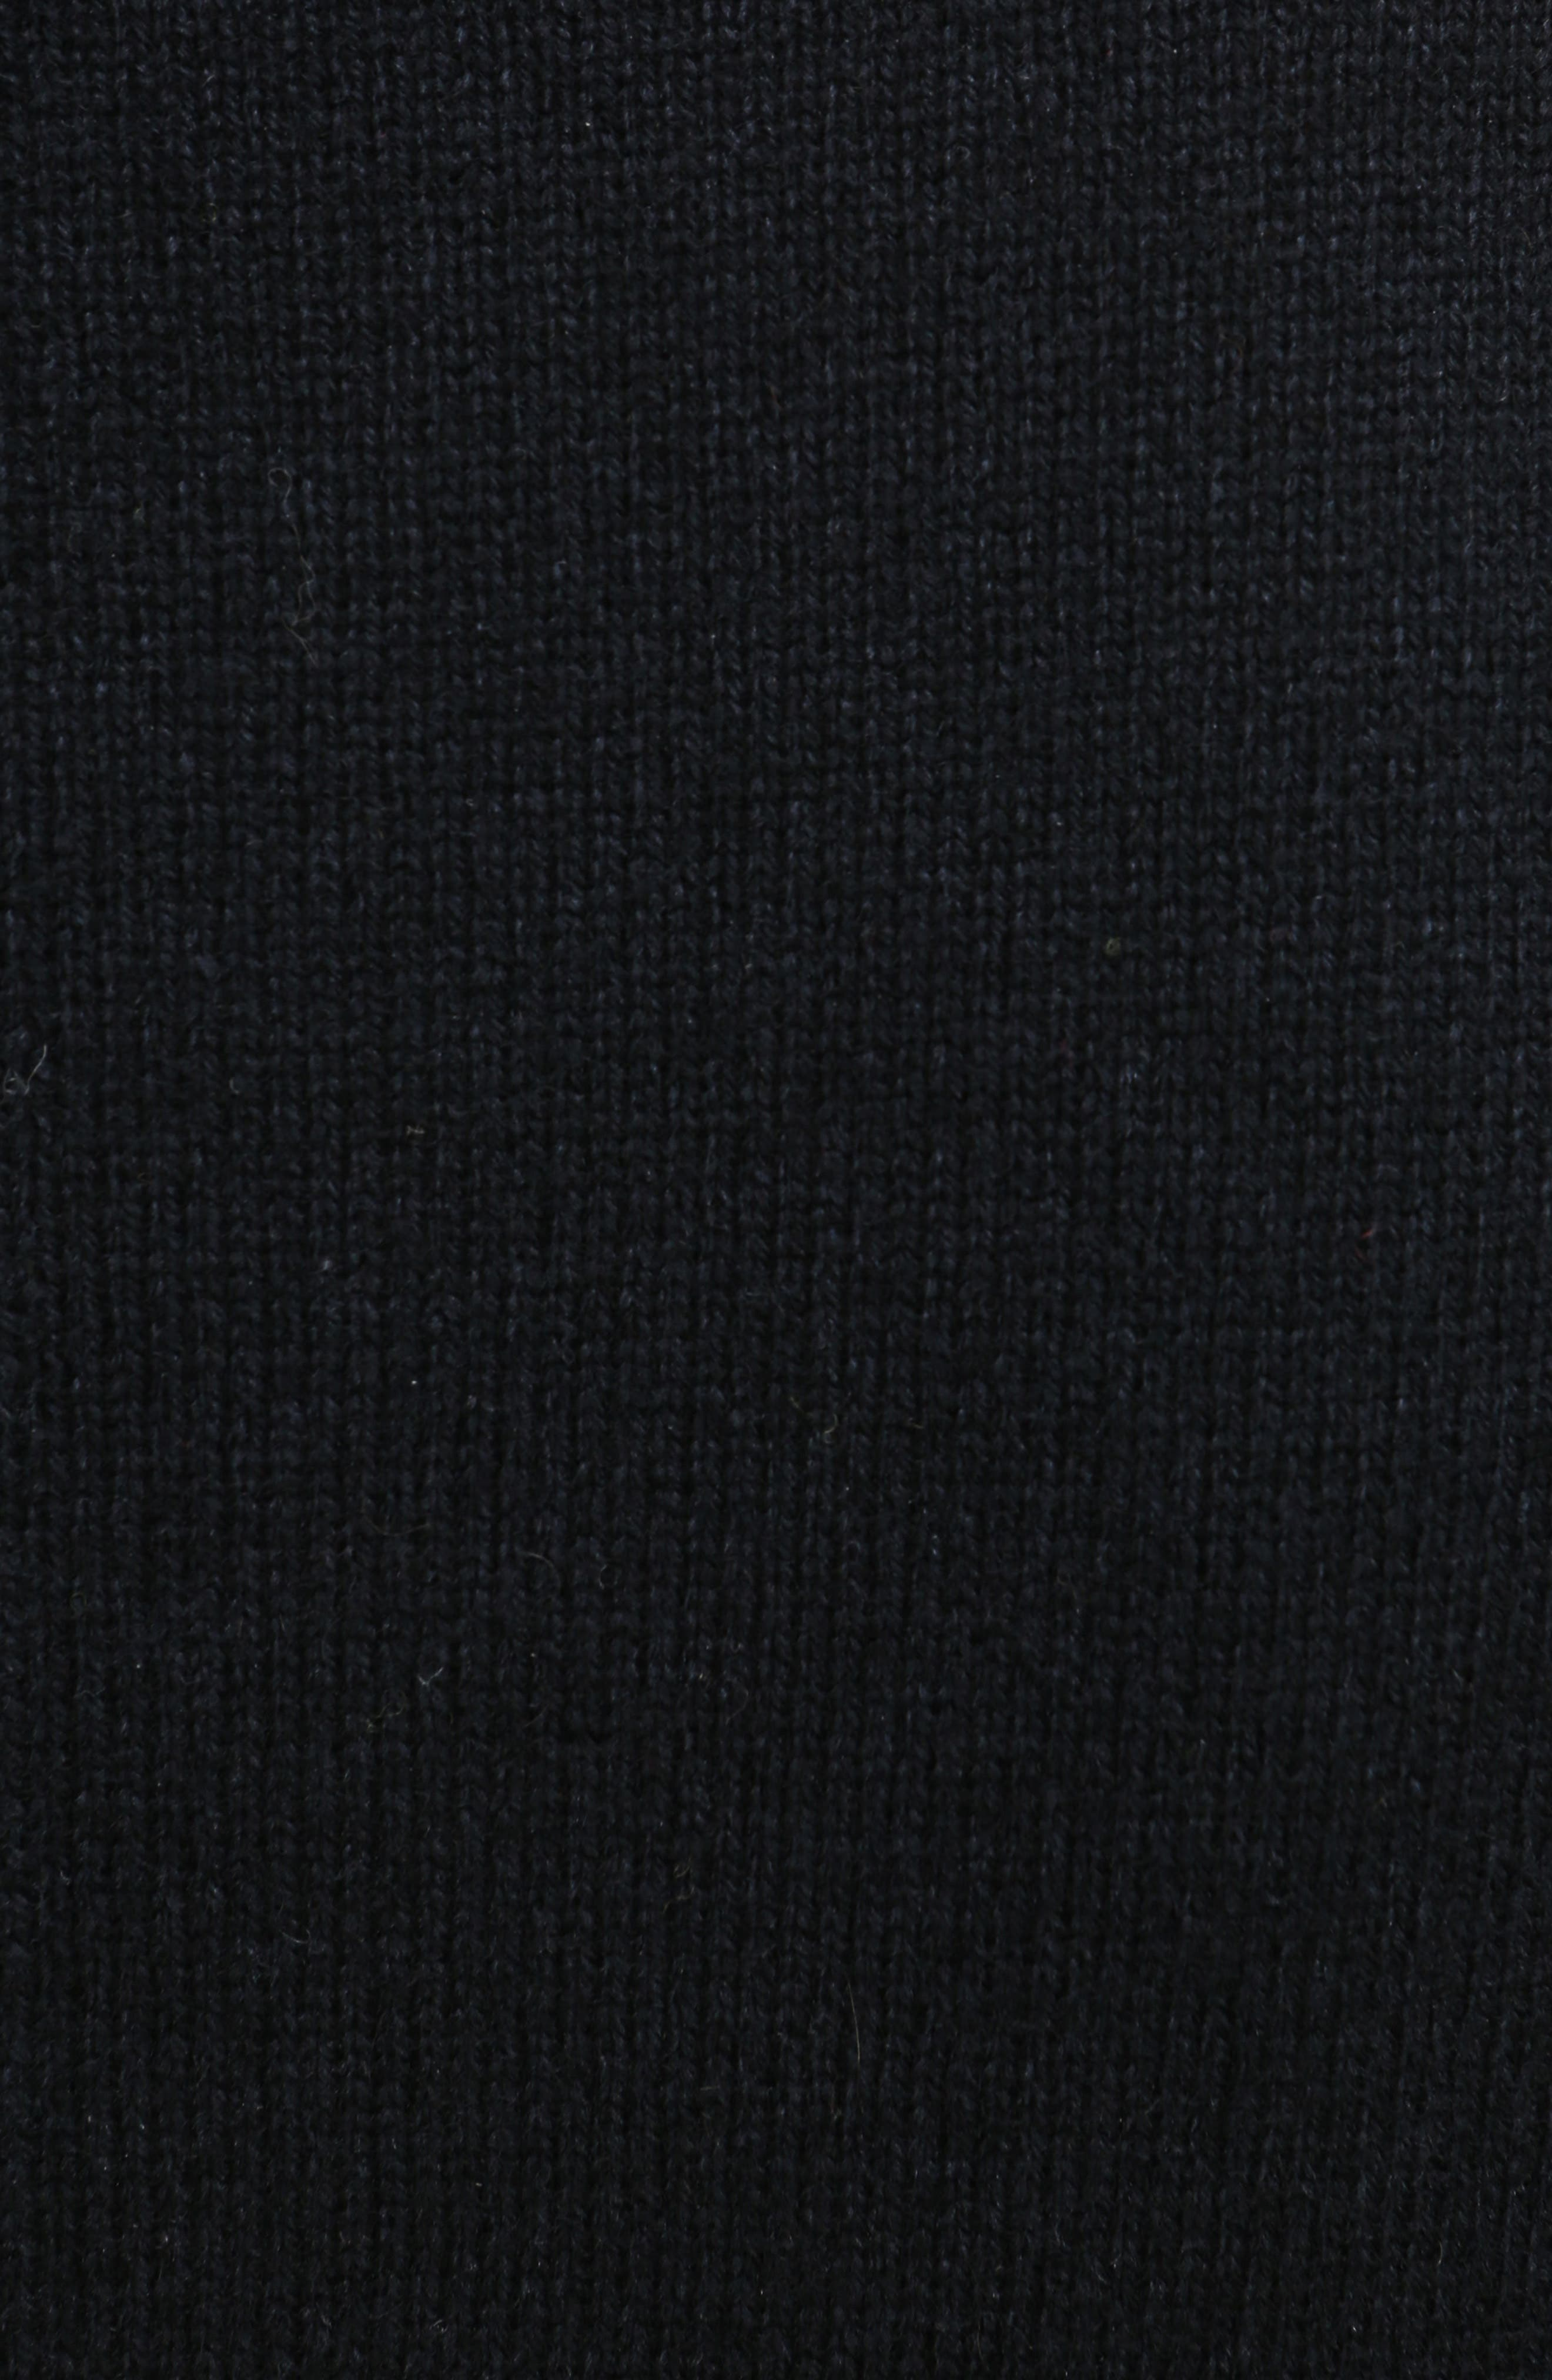 Imitation Pearl Inset Wool Blend Sweater,                             Alternate thumbnail 5, color,                             001